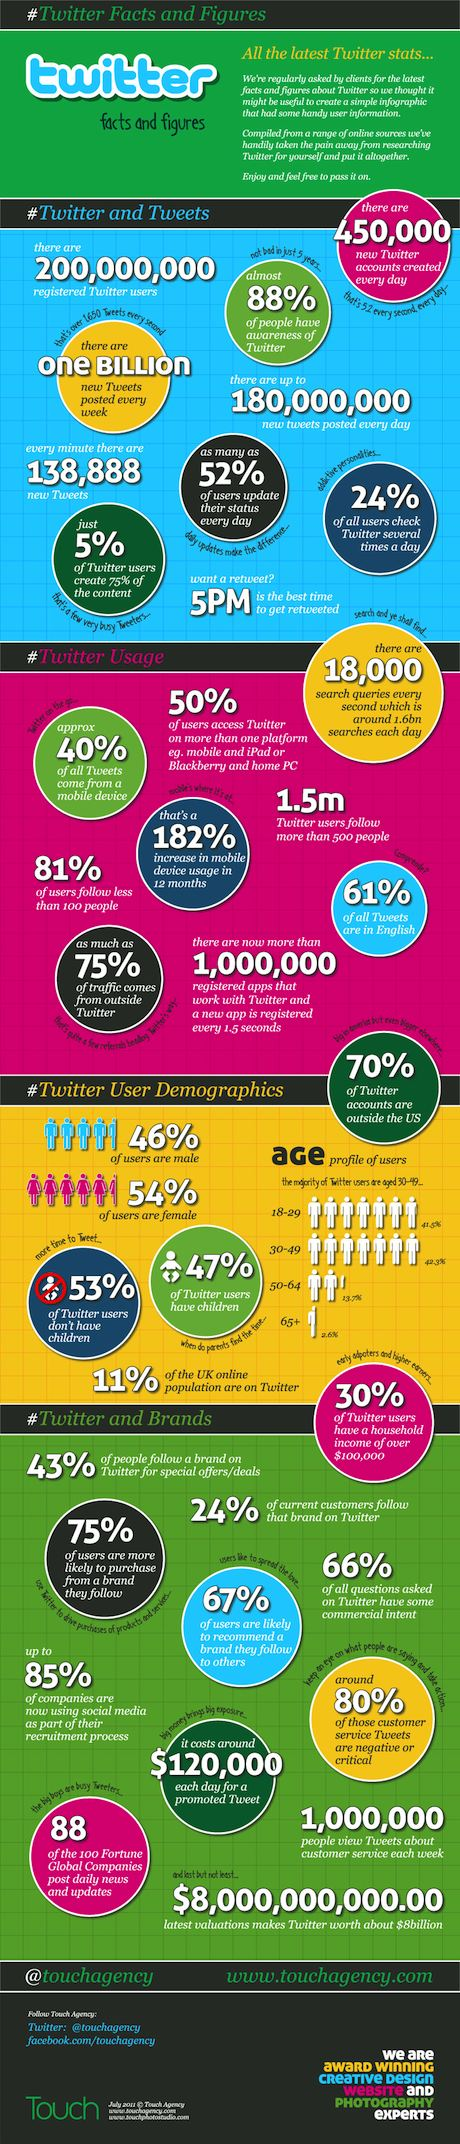 Twitter: Faces & Figures - Infographic by Touch Agency